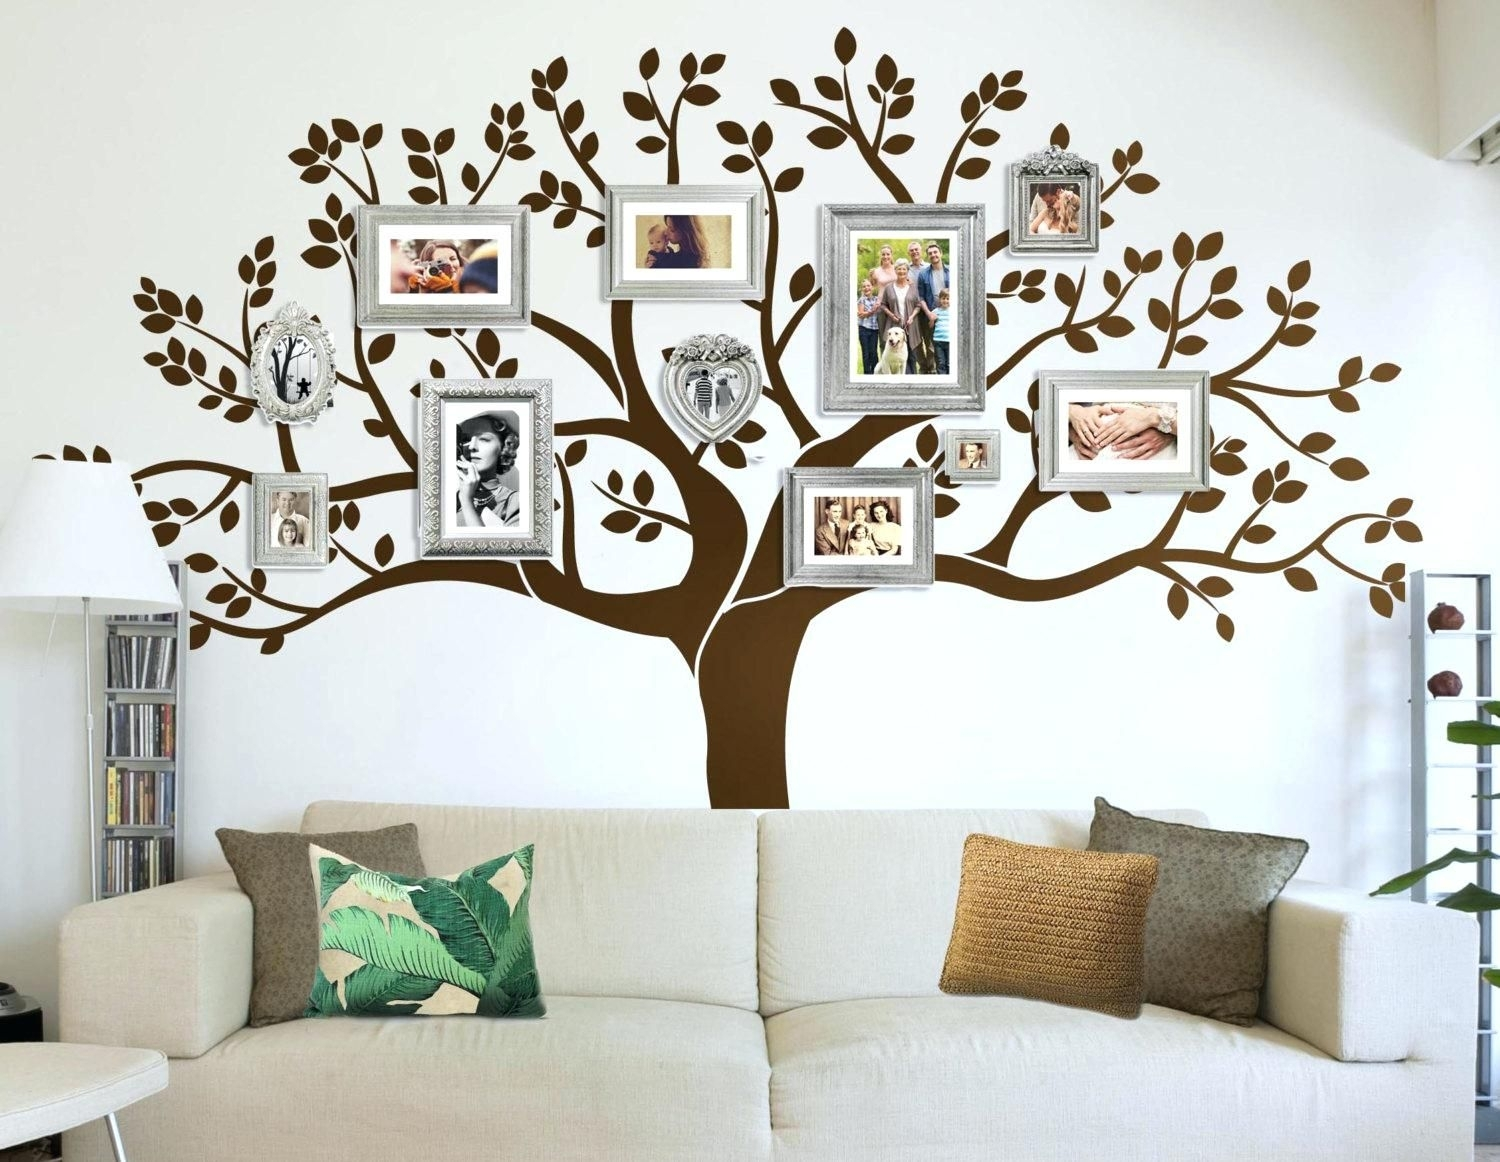 Stunning Large Wood Tree Wall Decor Art On Designs Decoration Diy With Most Current Wall Tree Art (View 17 of 20)